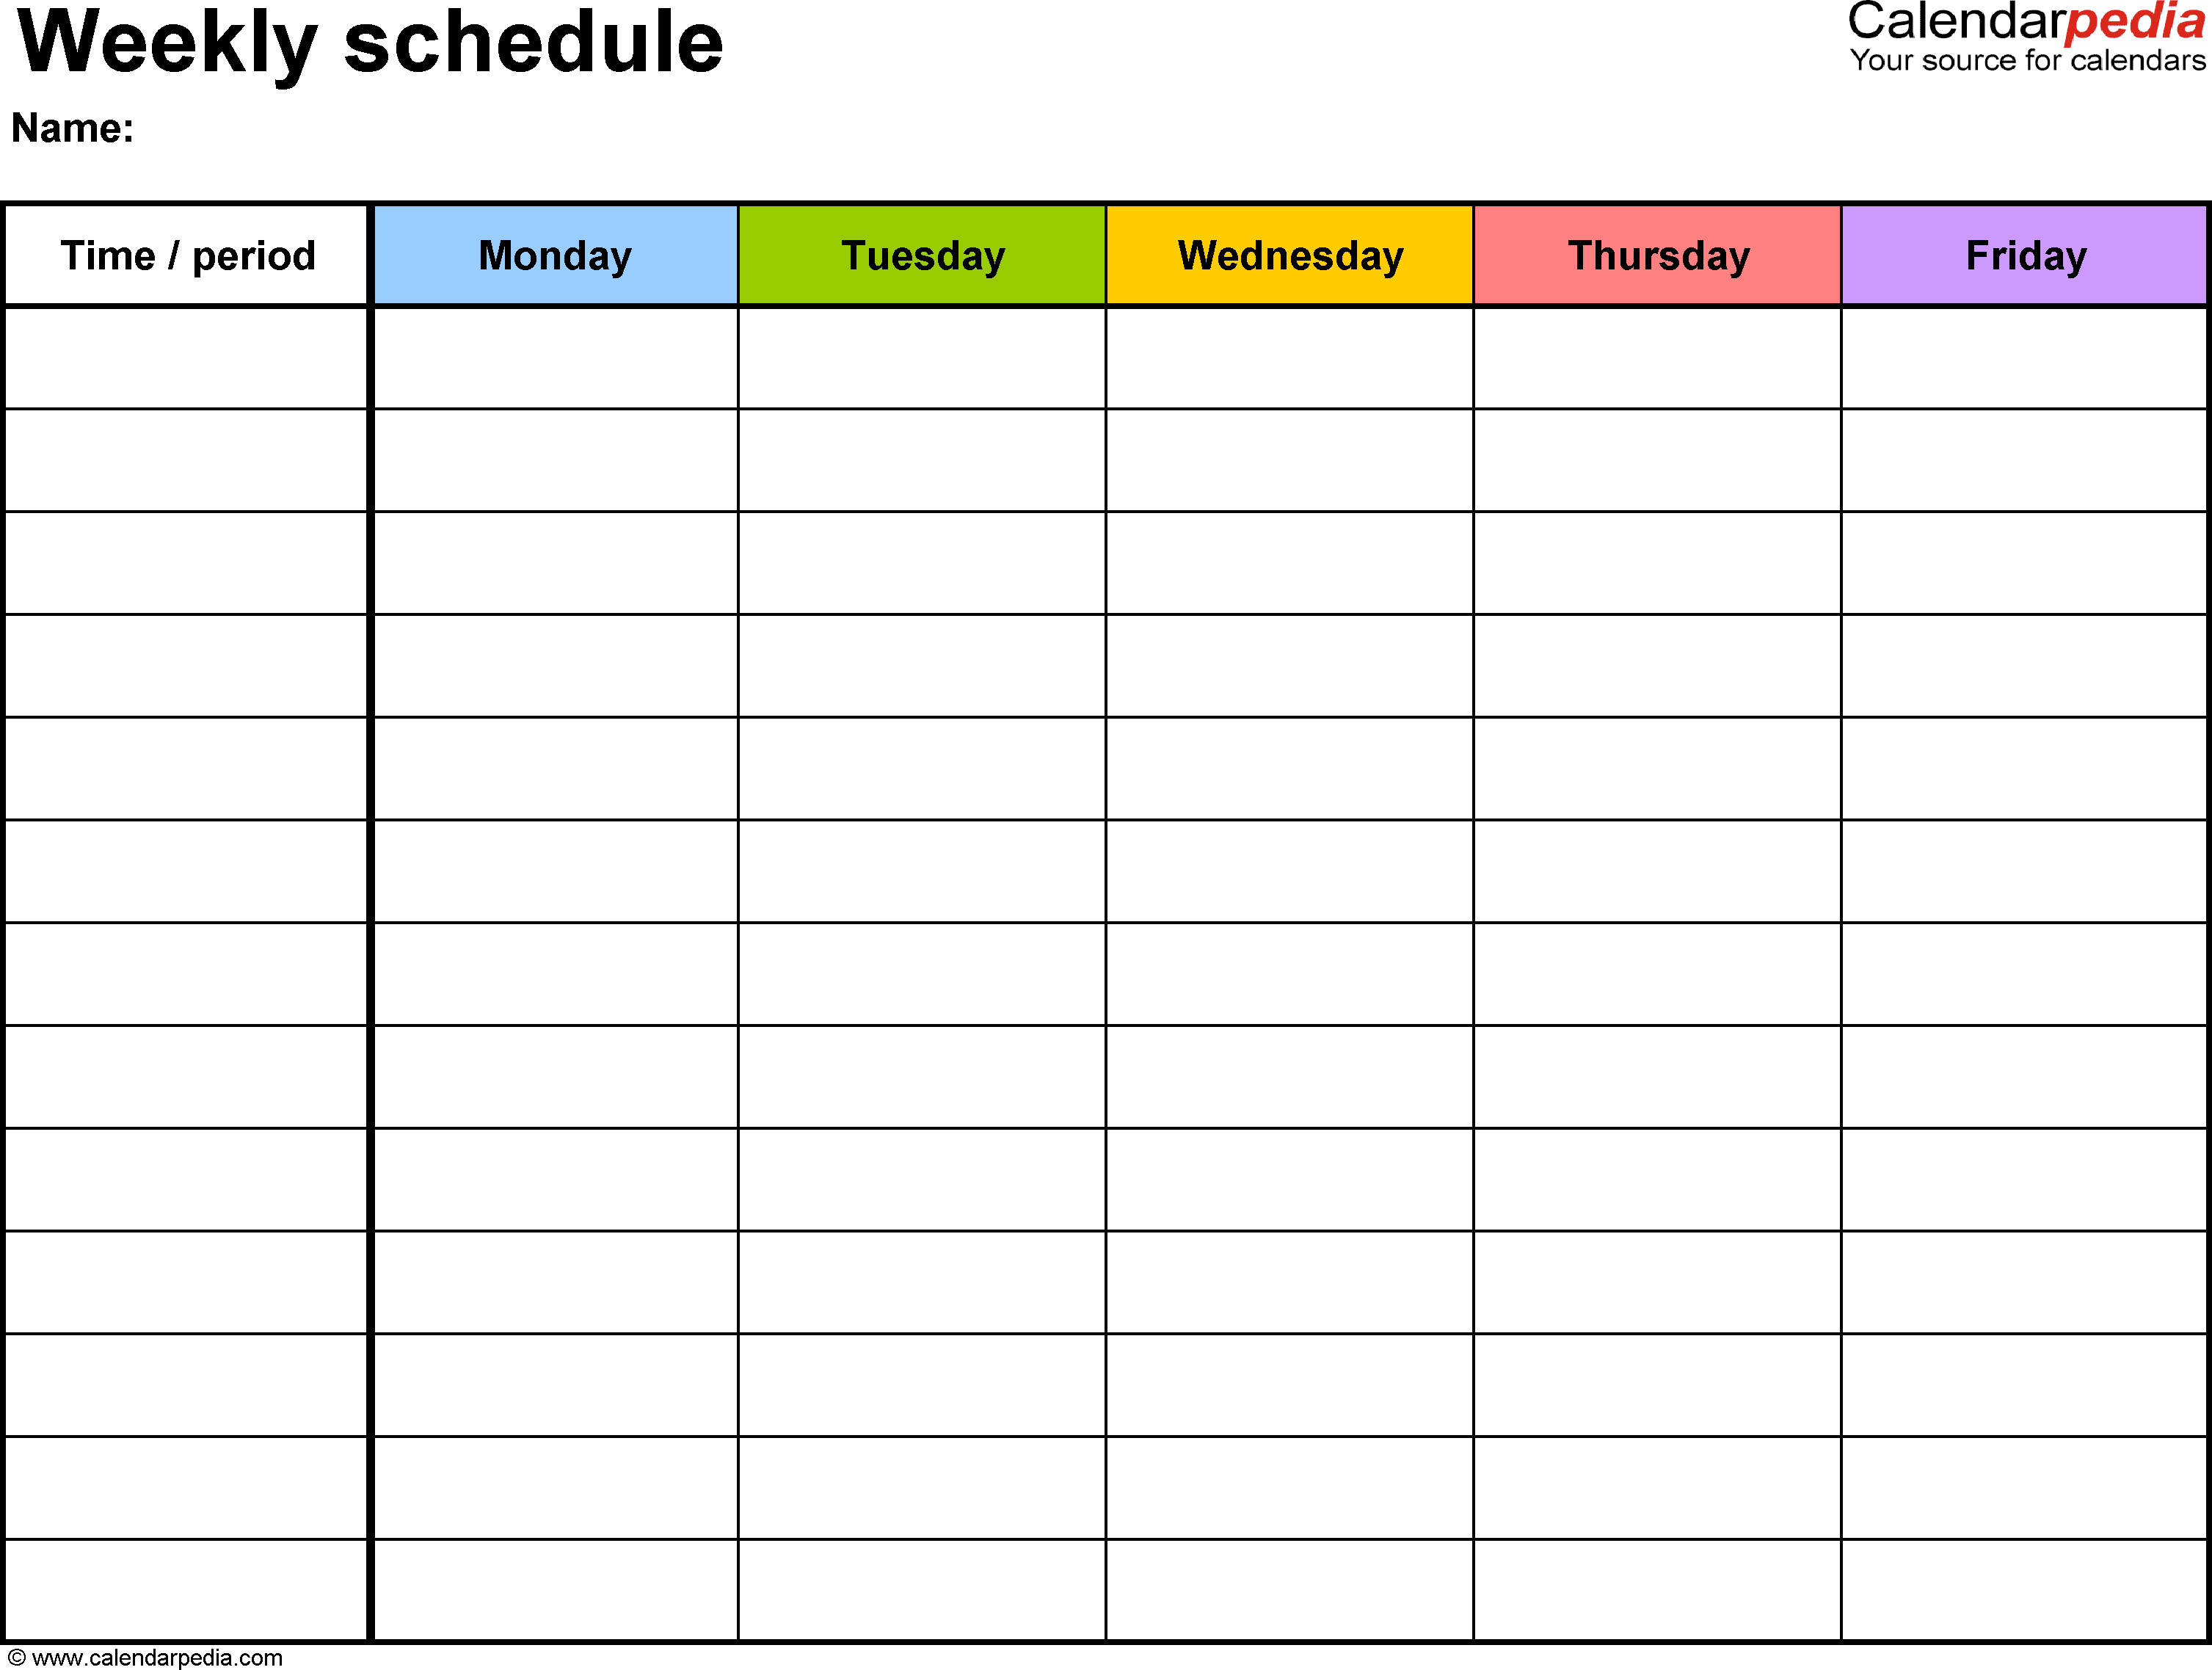 Free Weekly Schedule Templates For Word - 18 Templates to Time Management Charts Templates